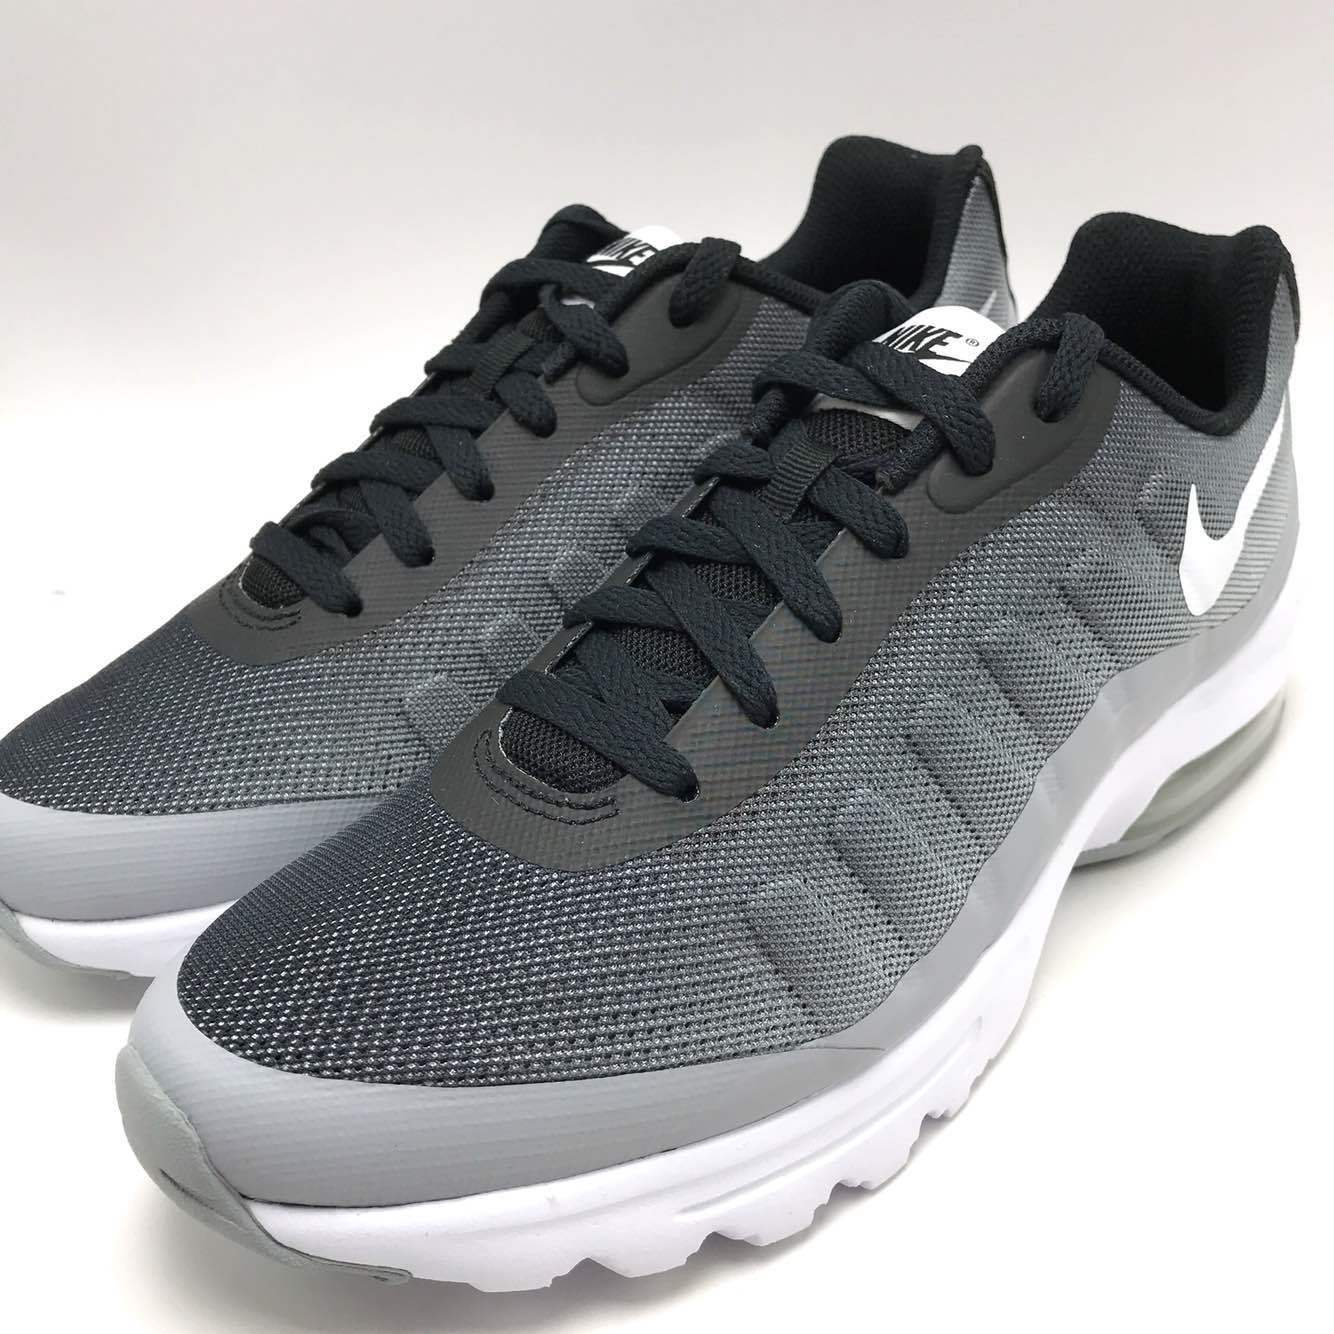 brand new 4fce1 4f47d Nike Air Max Invigor Print Men s Running Shoes Black White-Wolf Grey Grey  Grey 749688-001 c654a1